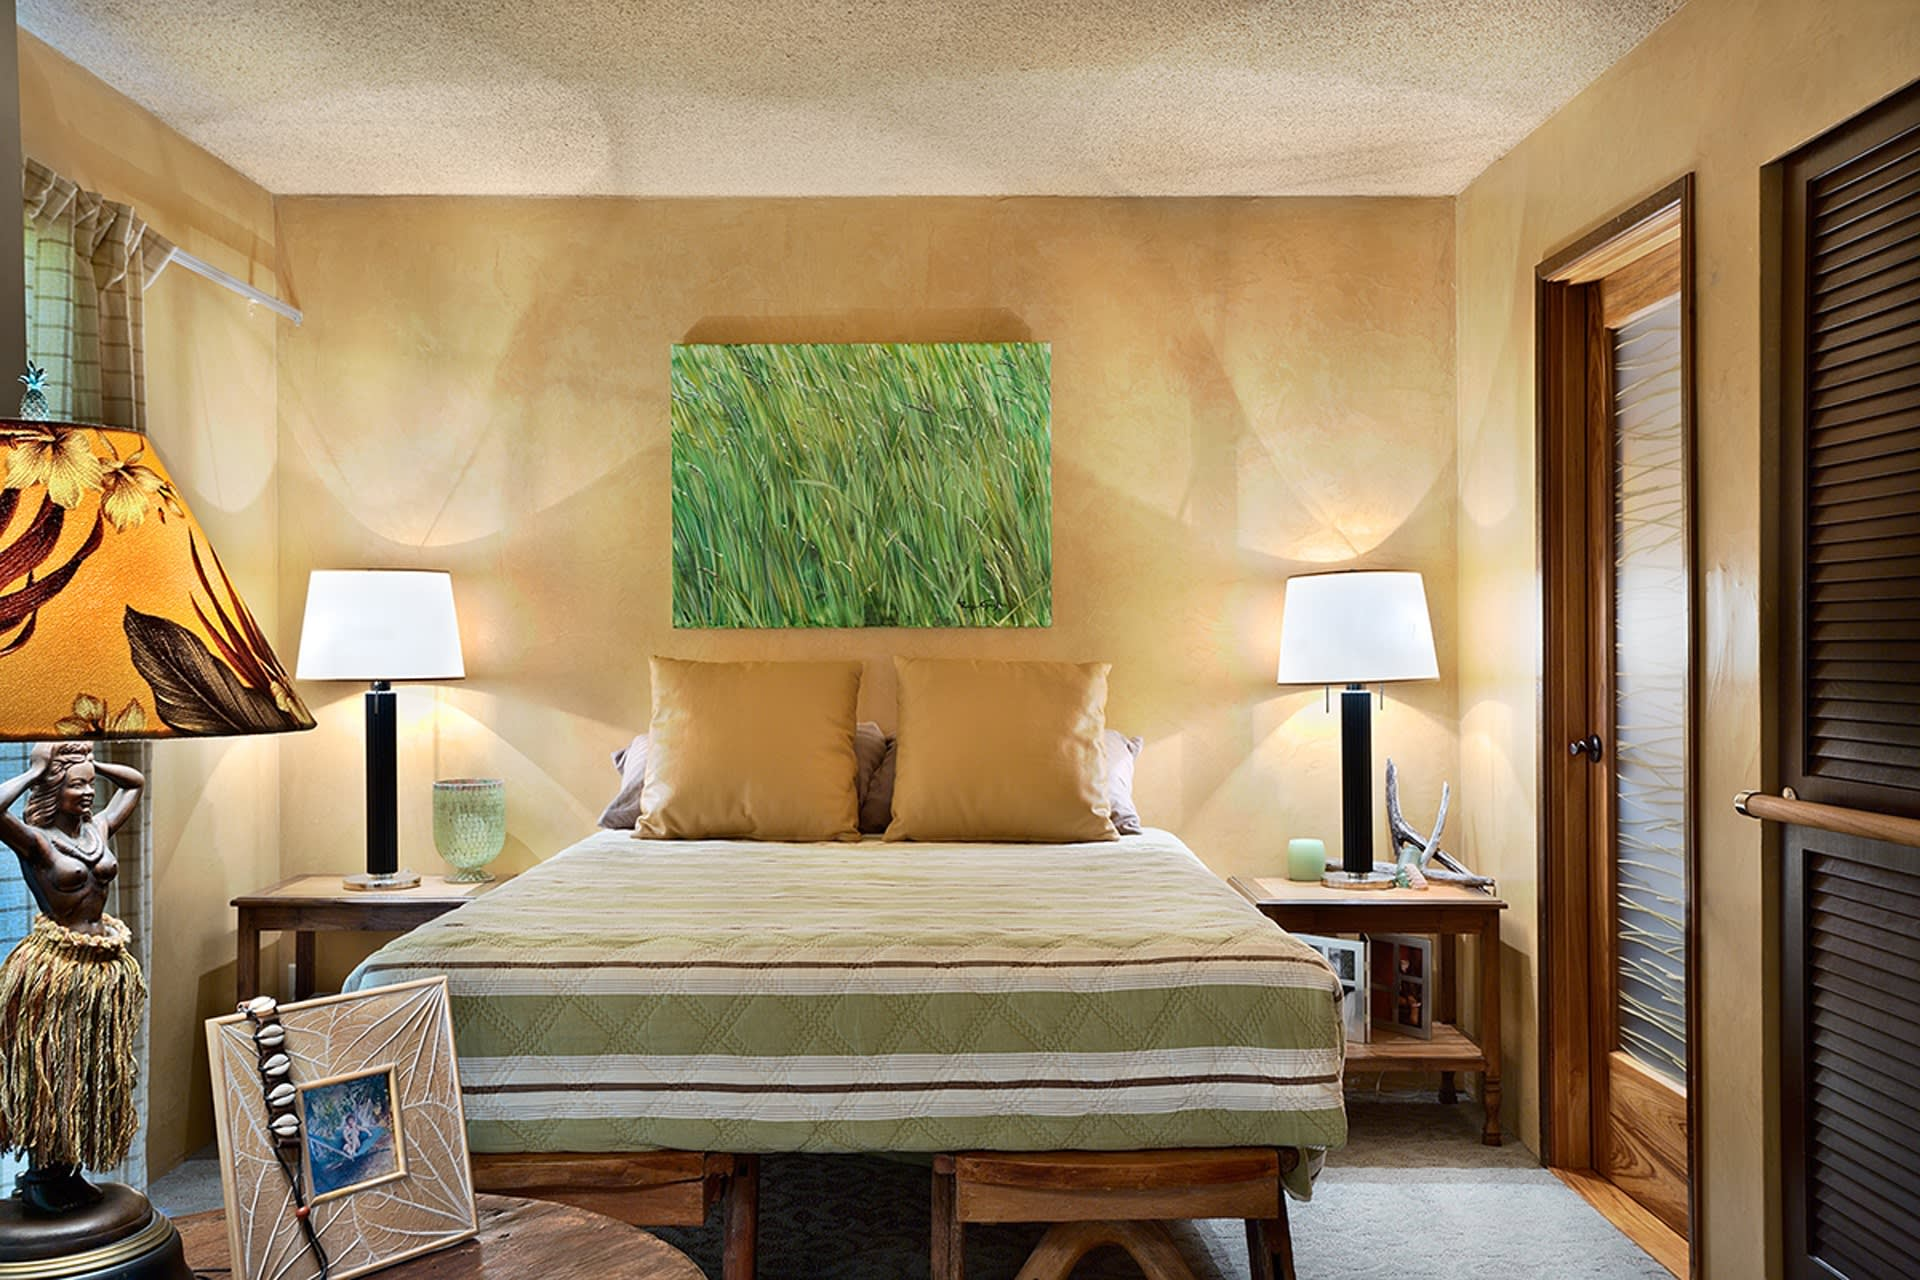 Doze off in this queen-sized bed.